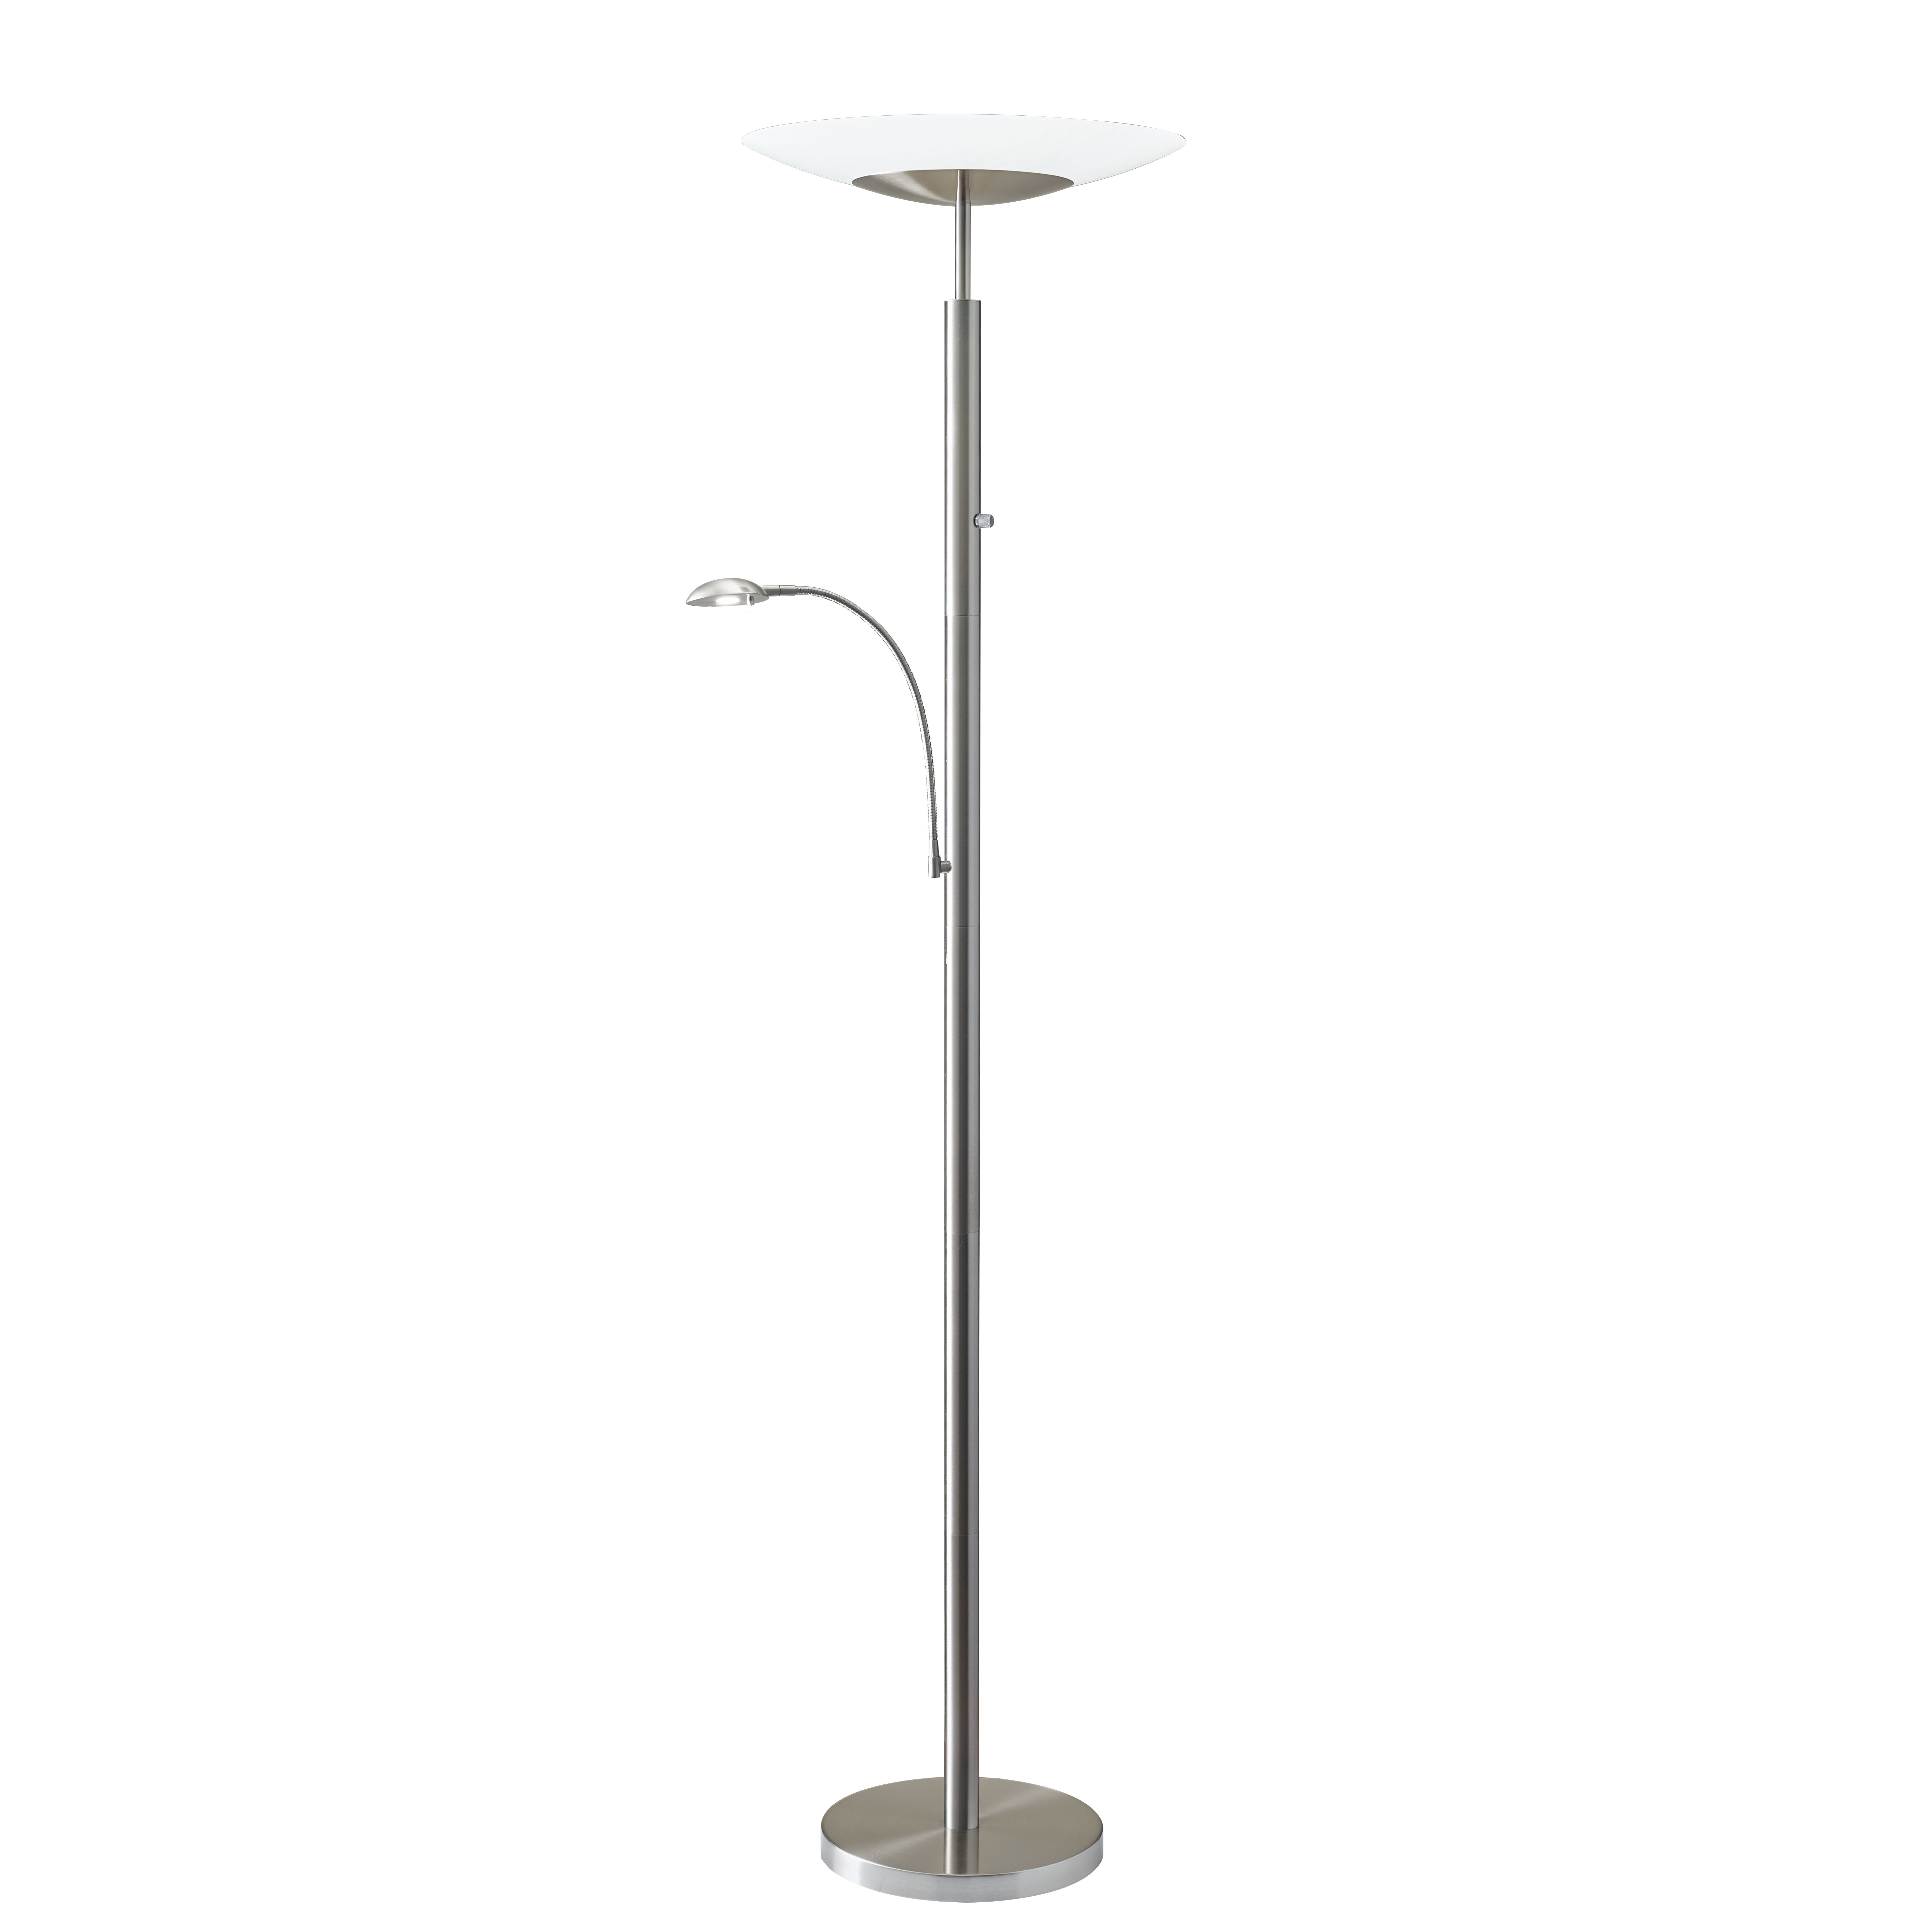 Adesso stellar 72quot led torchiere floor lamp wayfair for Wayfair adesso floor lamp